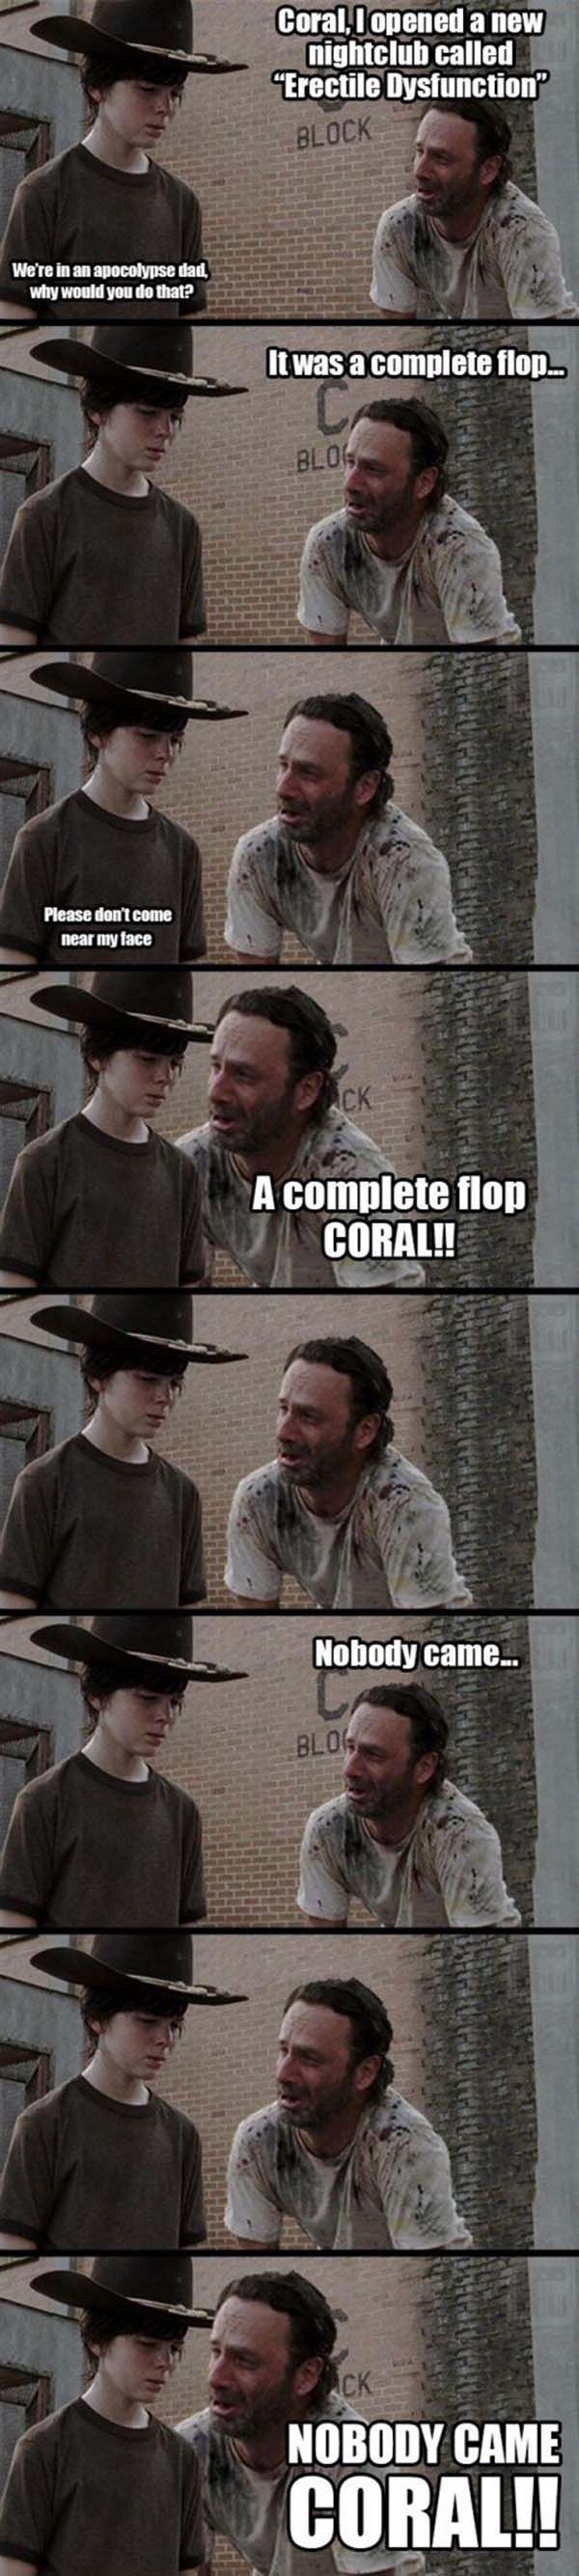 It's only walkers chained up by Connie. Hurumph.